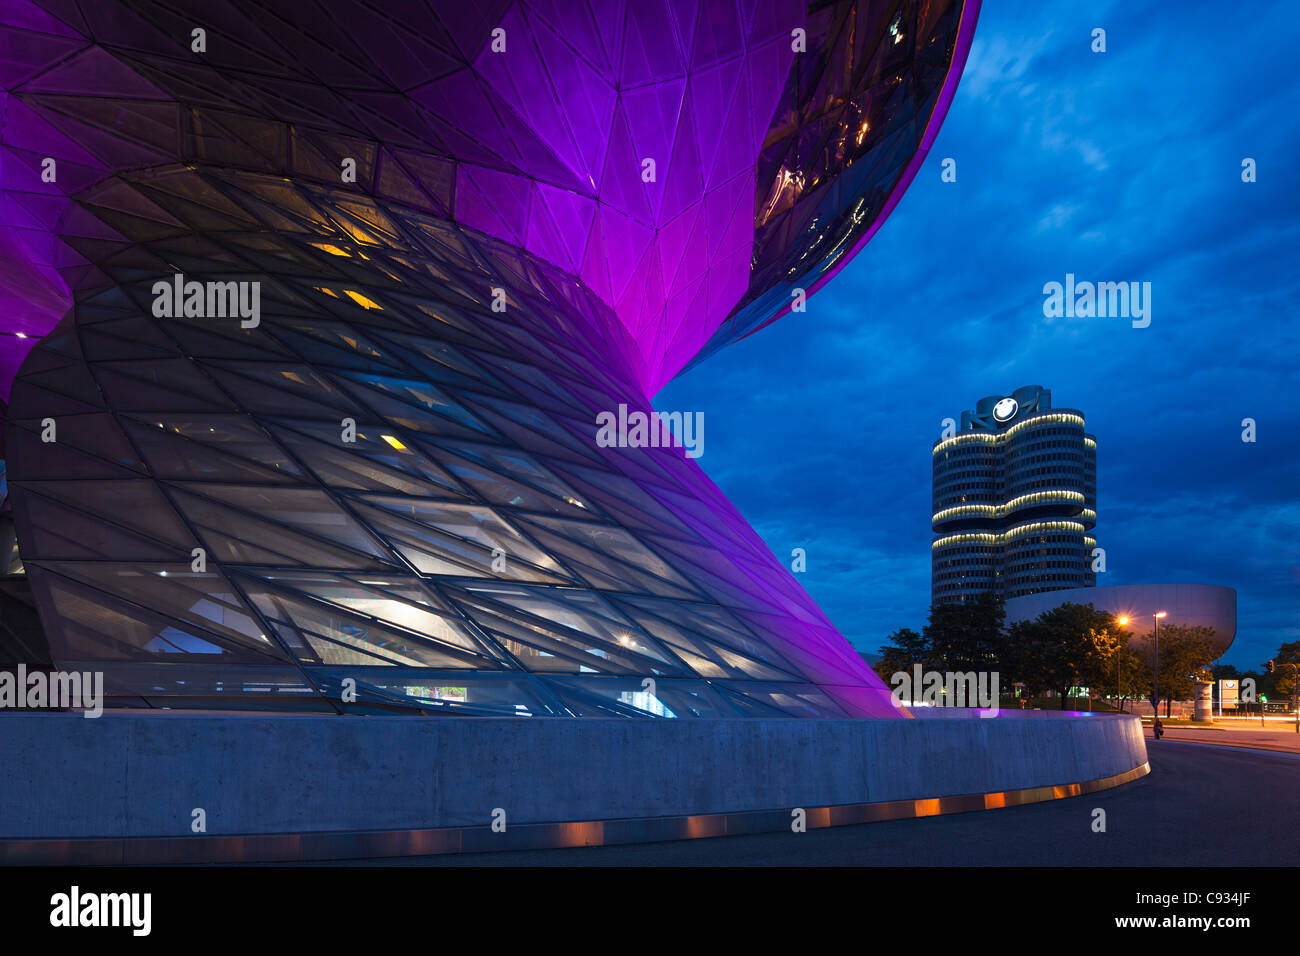 Twilight view of the main entrance to BMW Welt, a exhibition facility of the BMW Company,Munich, Bavaria, Germany - Stock Image